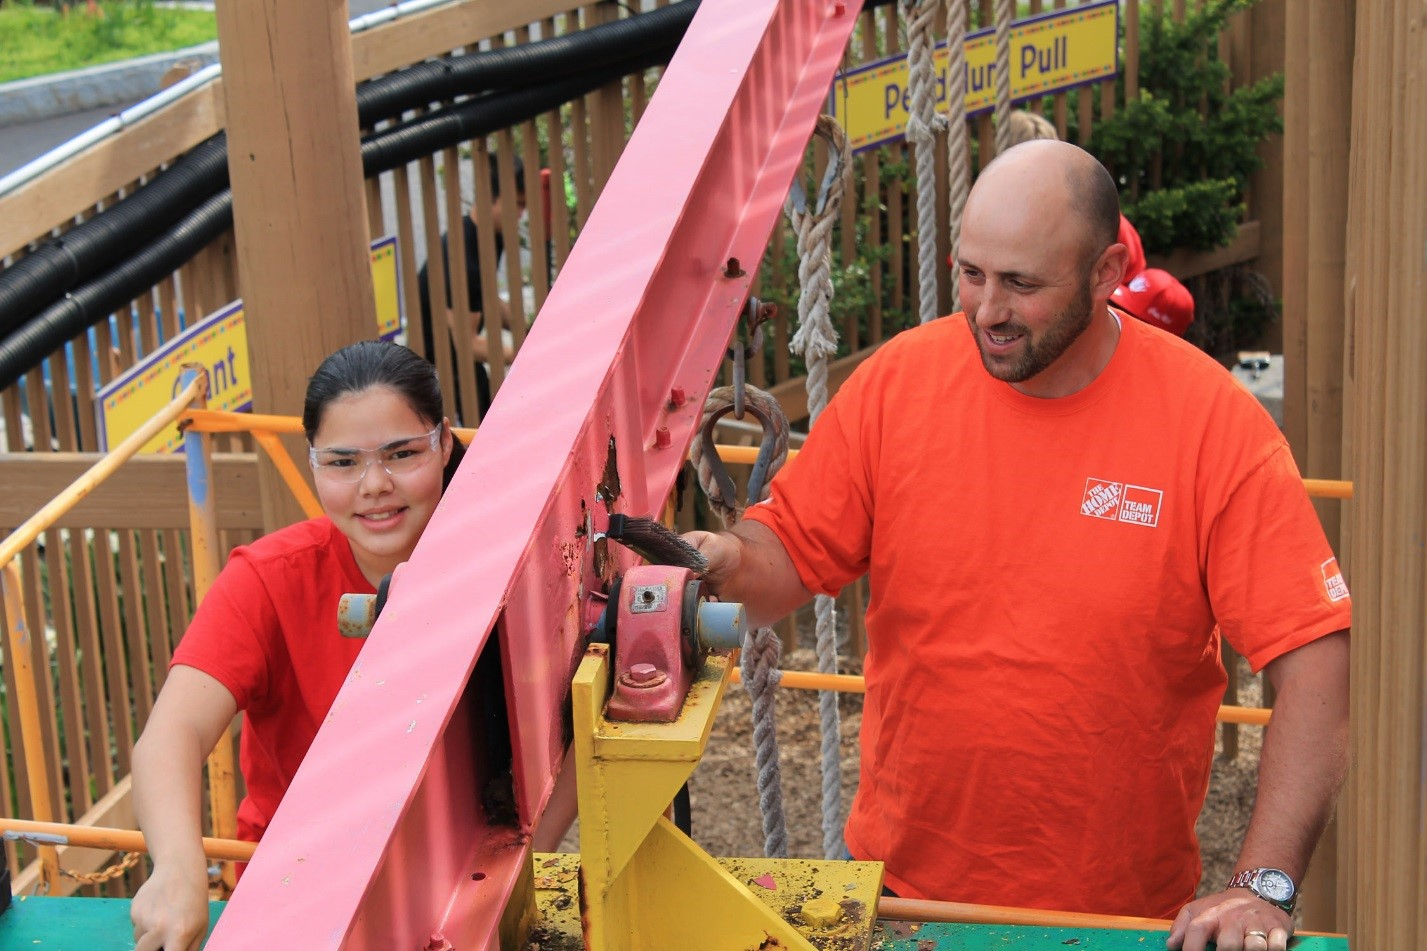 IHS junior Code Red member Abigail Lee and mentor Jim Bedore volunteer with Code Red at the Ithaca Sciencenter outdoor playground. Code Red frequently volunteers as a team around Ithaca, to clean up parks, work at the Ithaca Children's Gardens, and more.